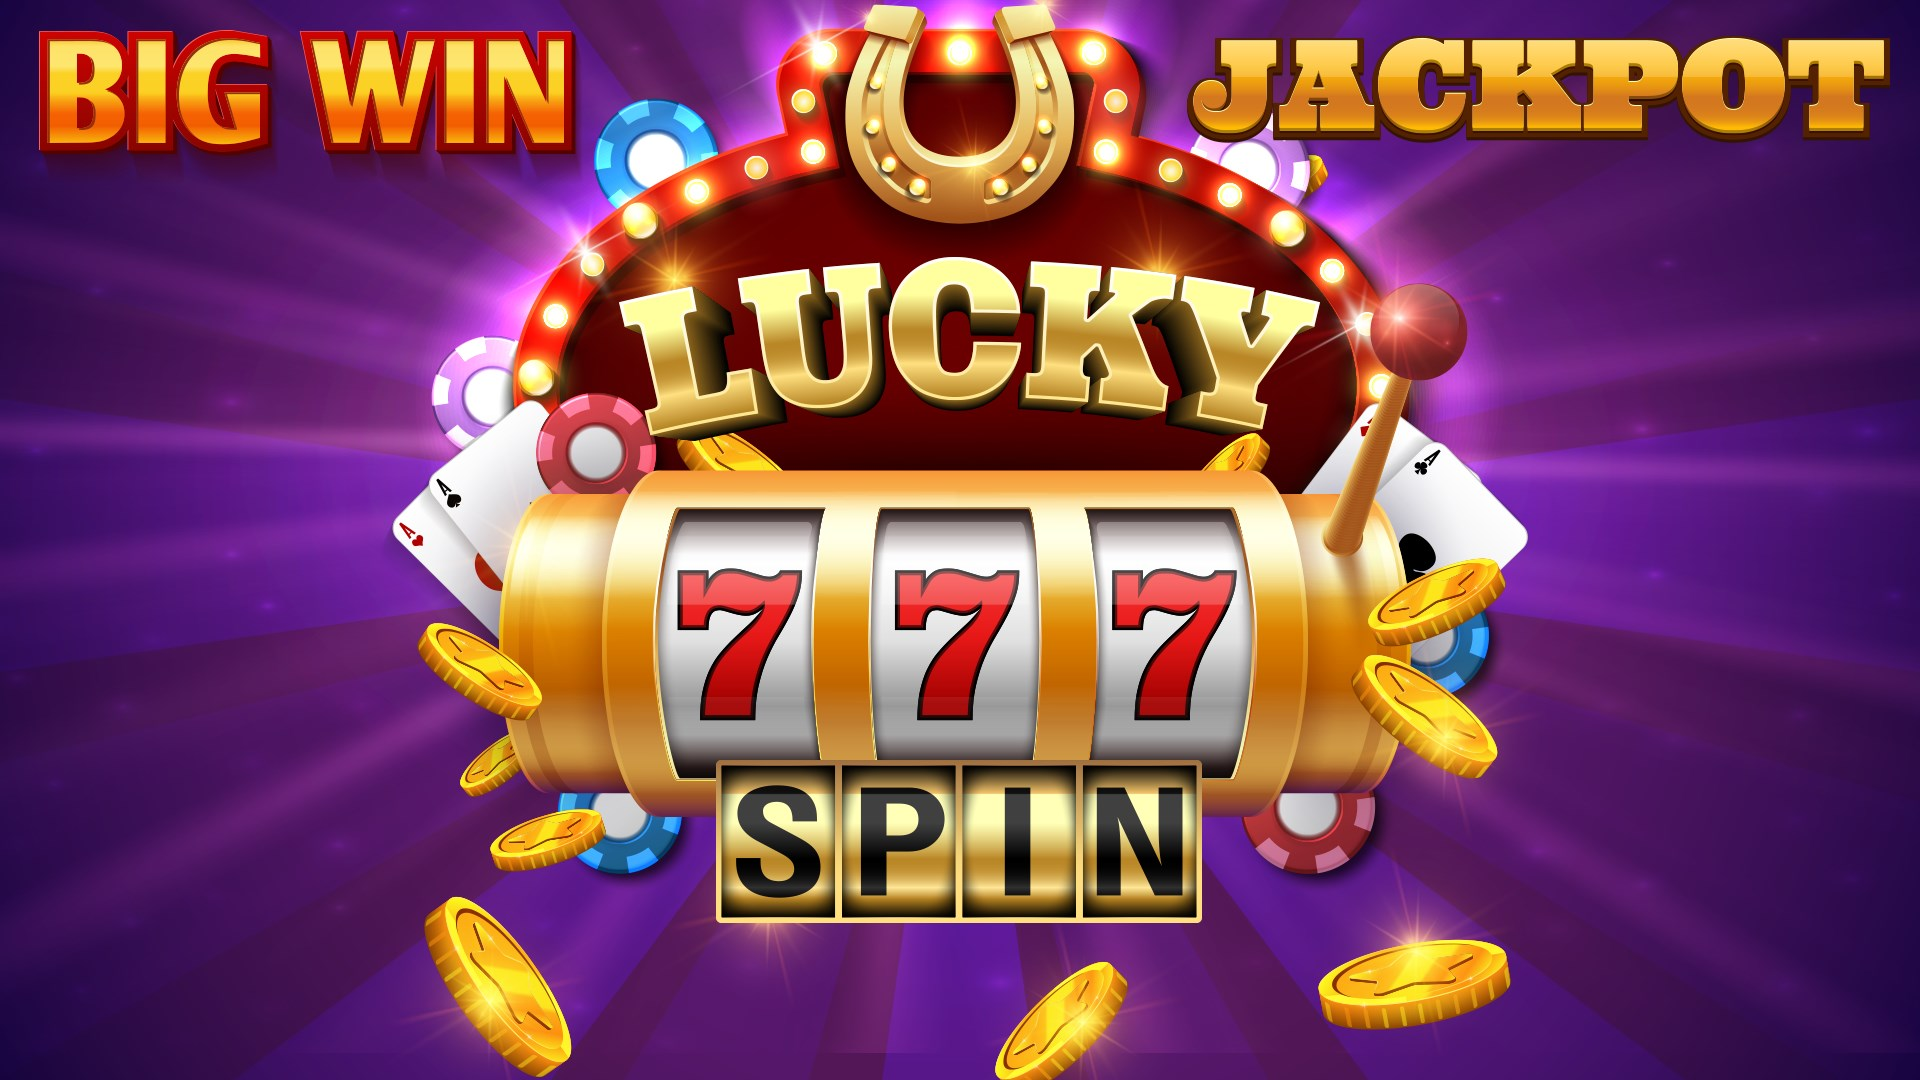 Splay Exclusive Jackpot Slot Games